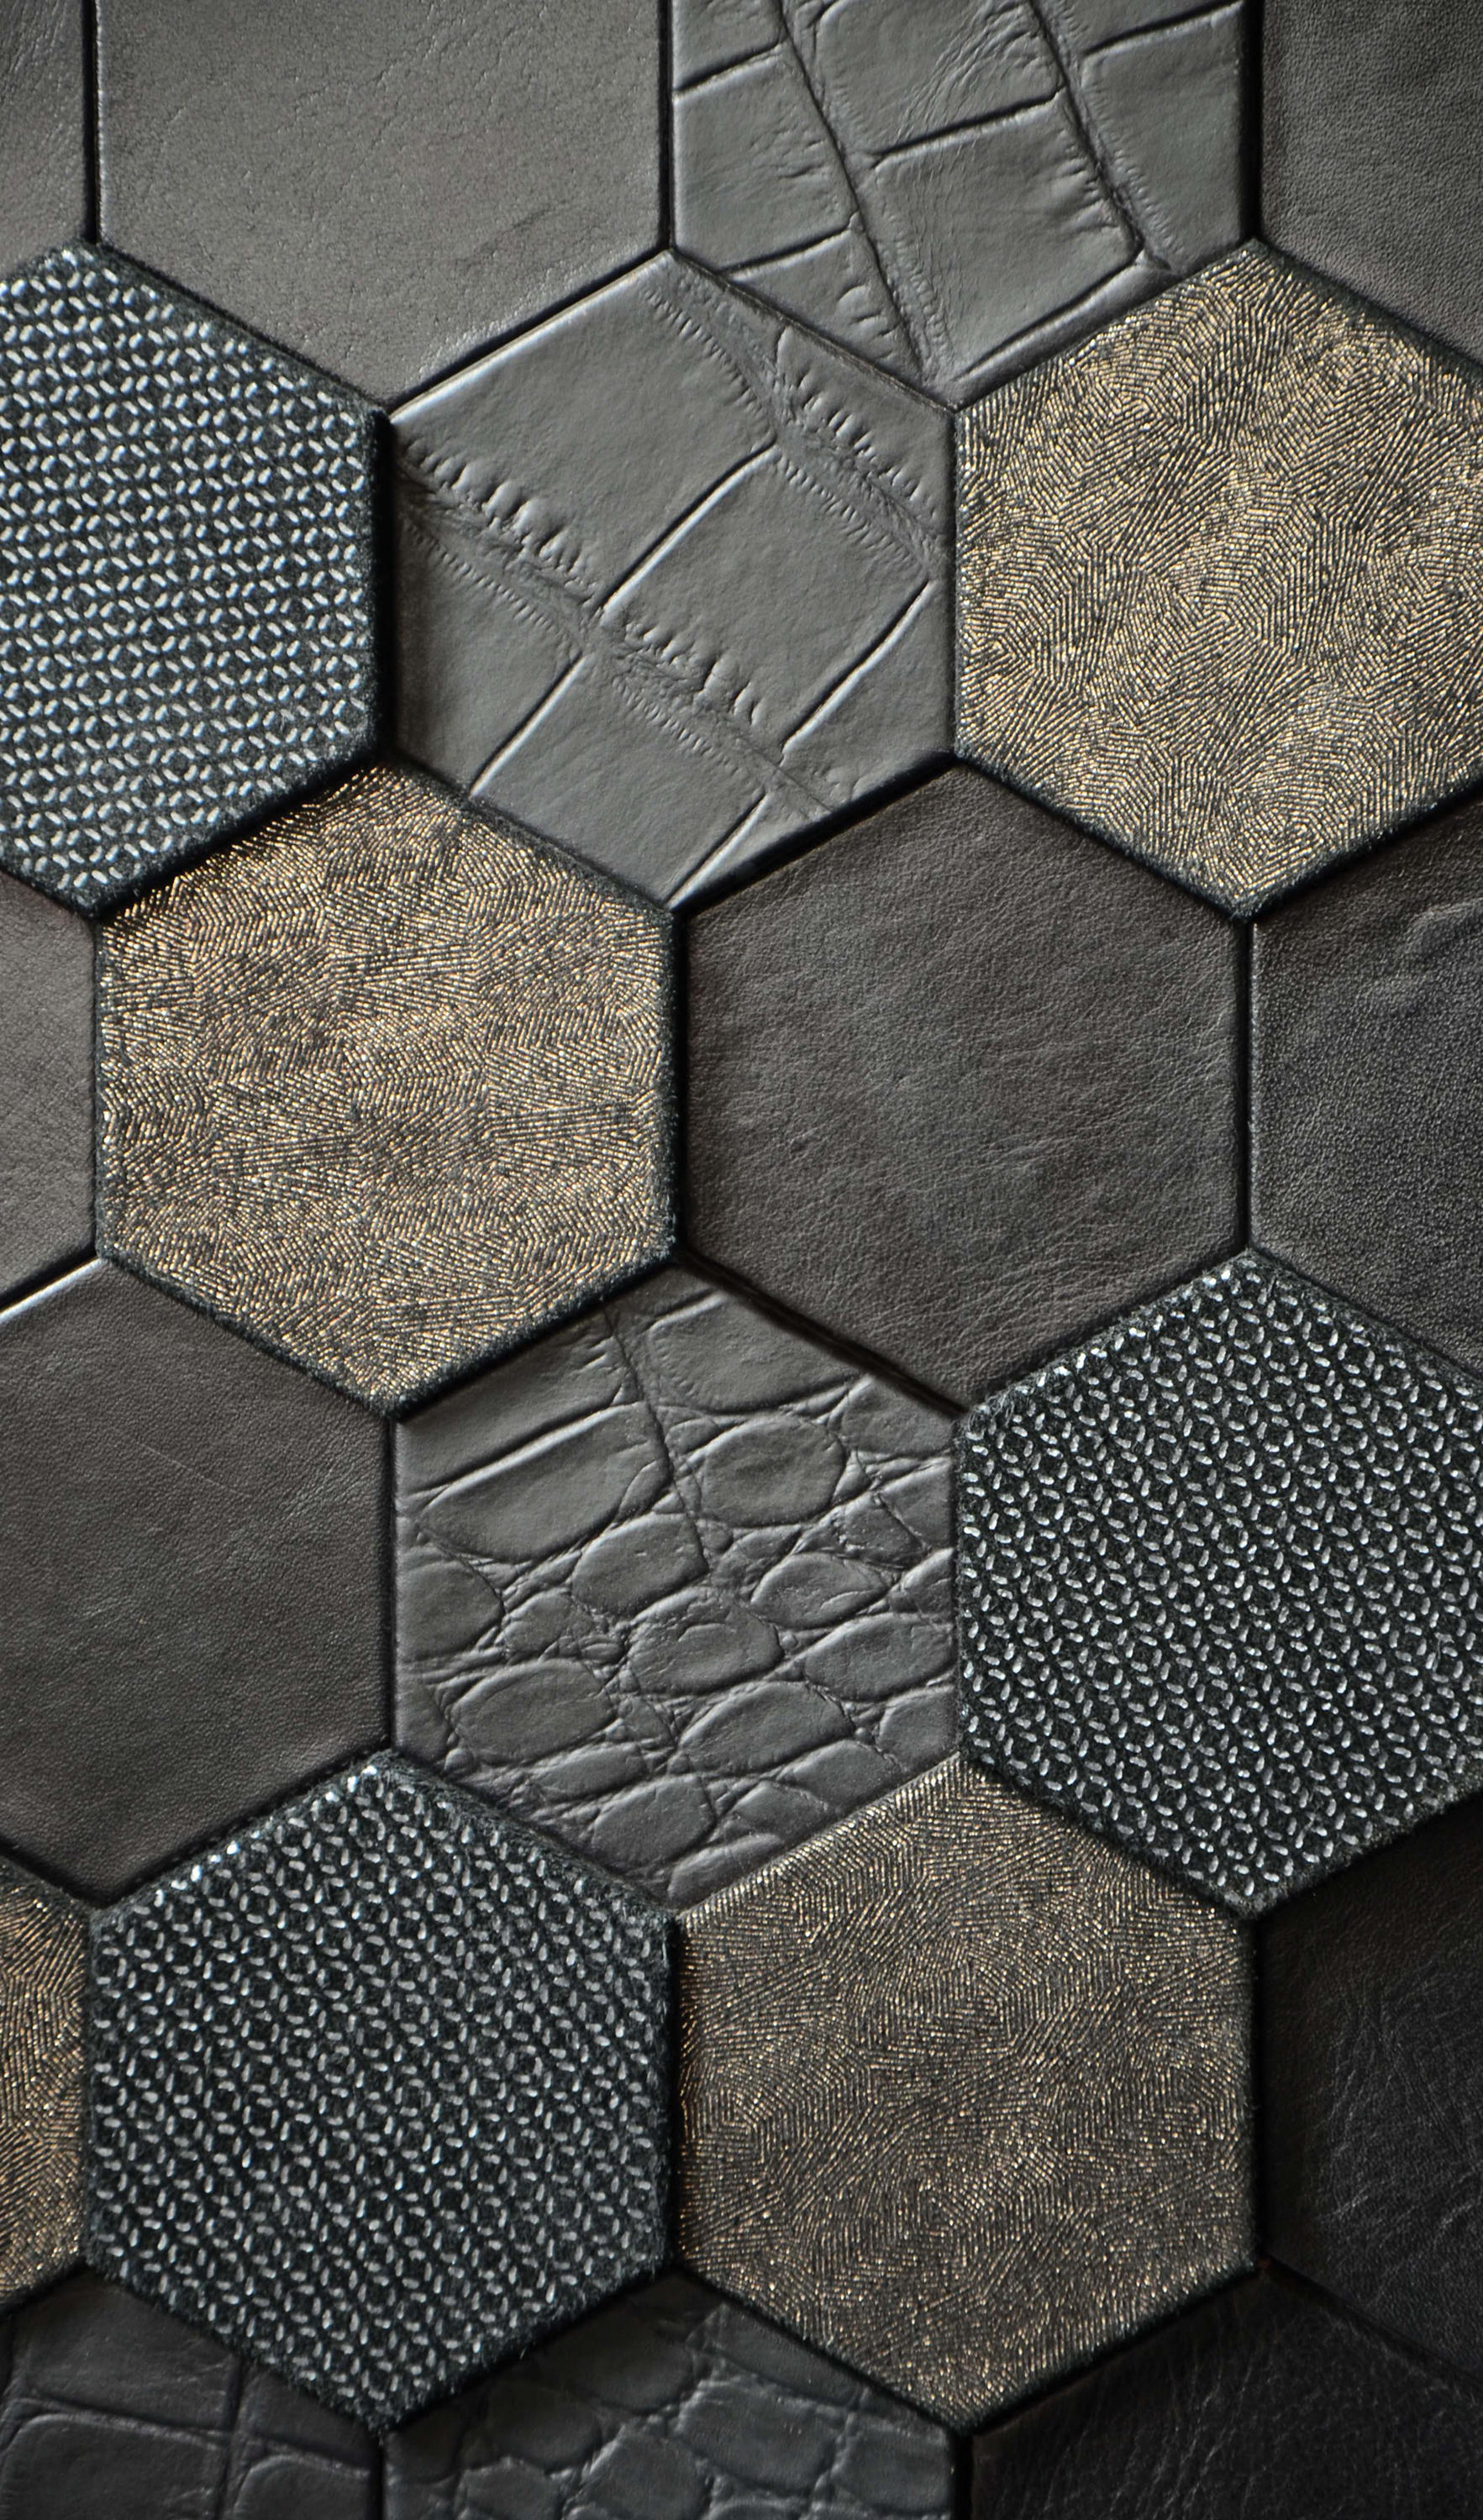 Marque harlem leather tiles from pintark architonic marque harlem by pintark leather tiles dailygadgetfo Images